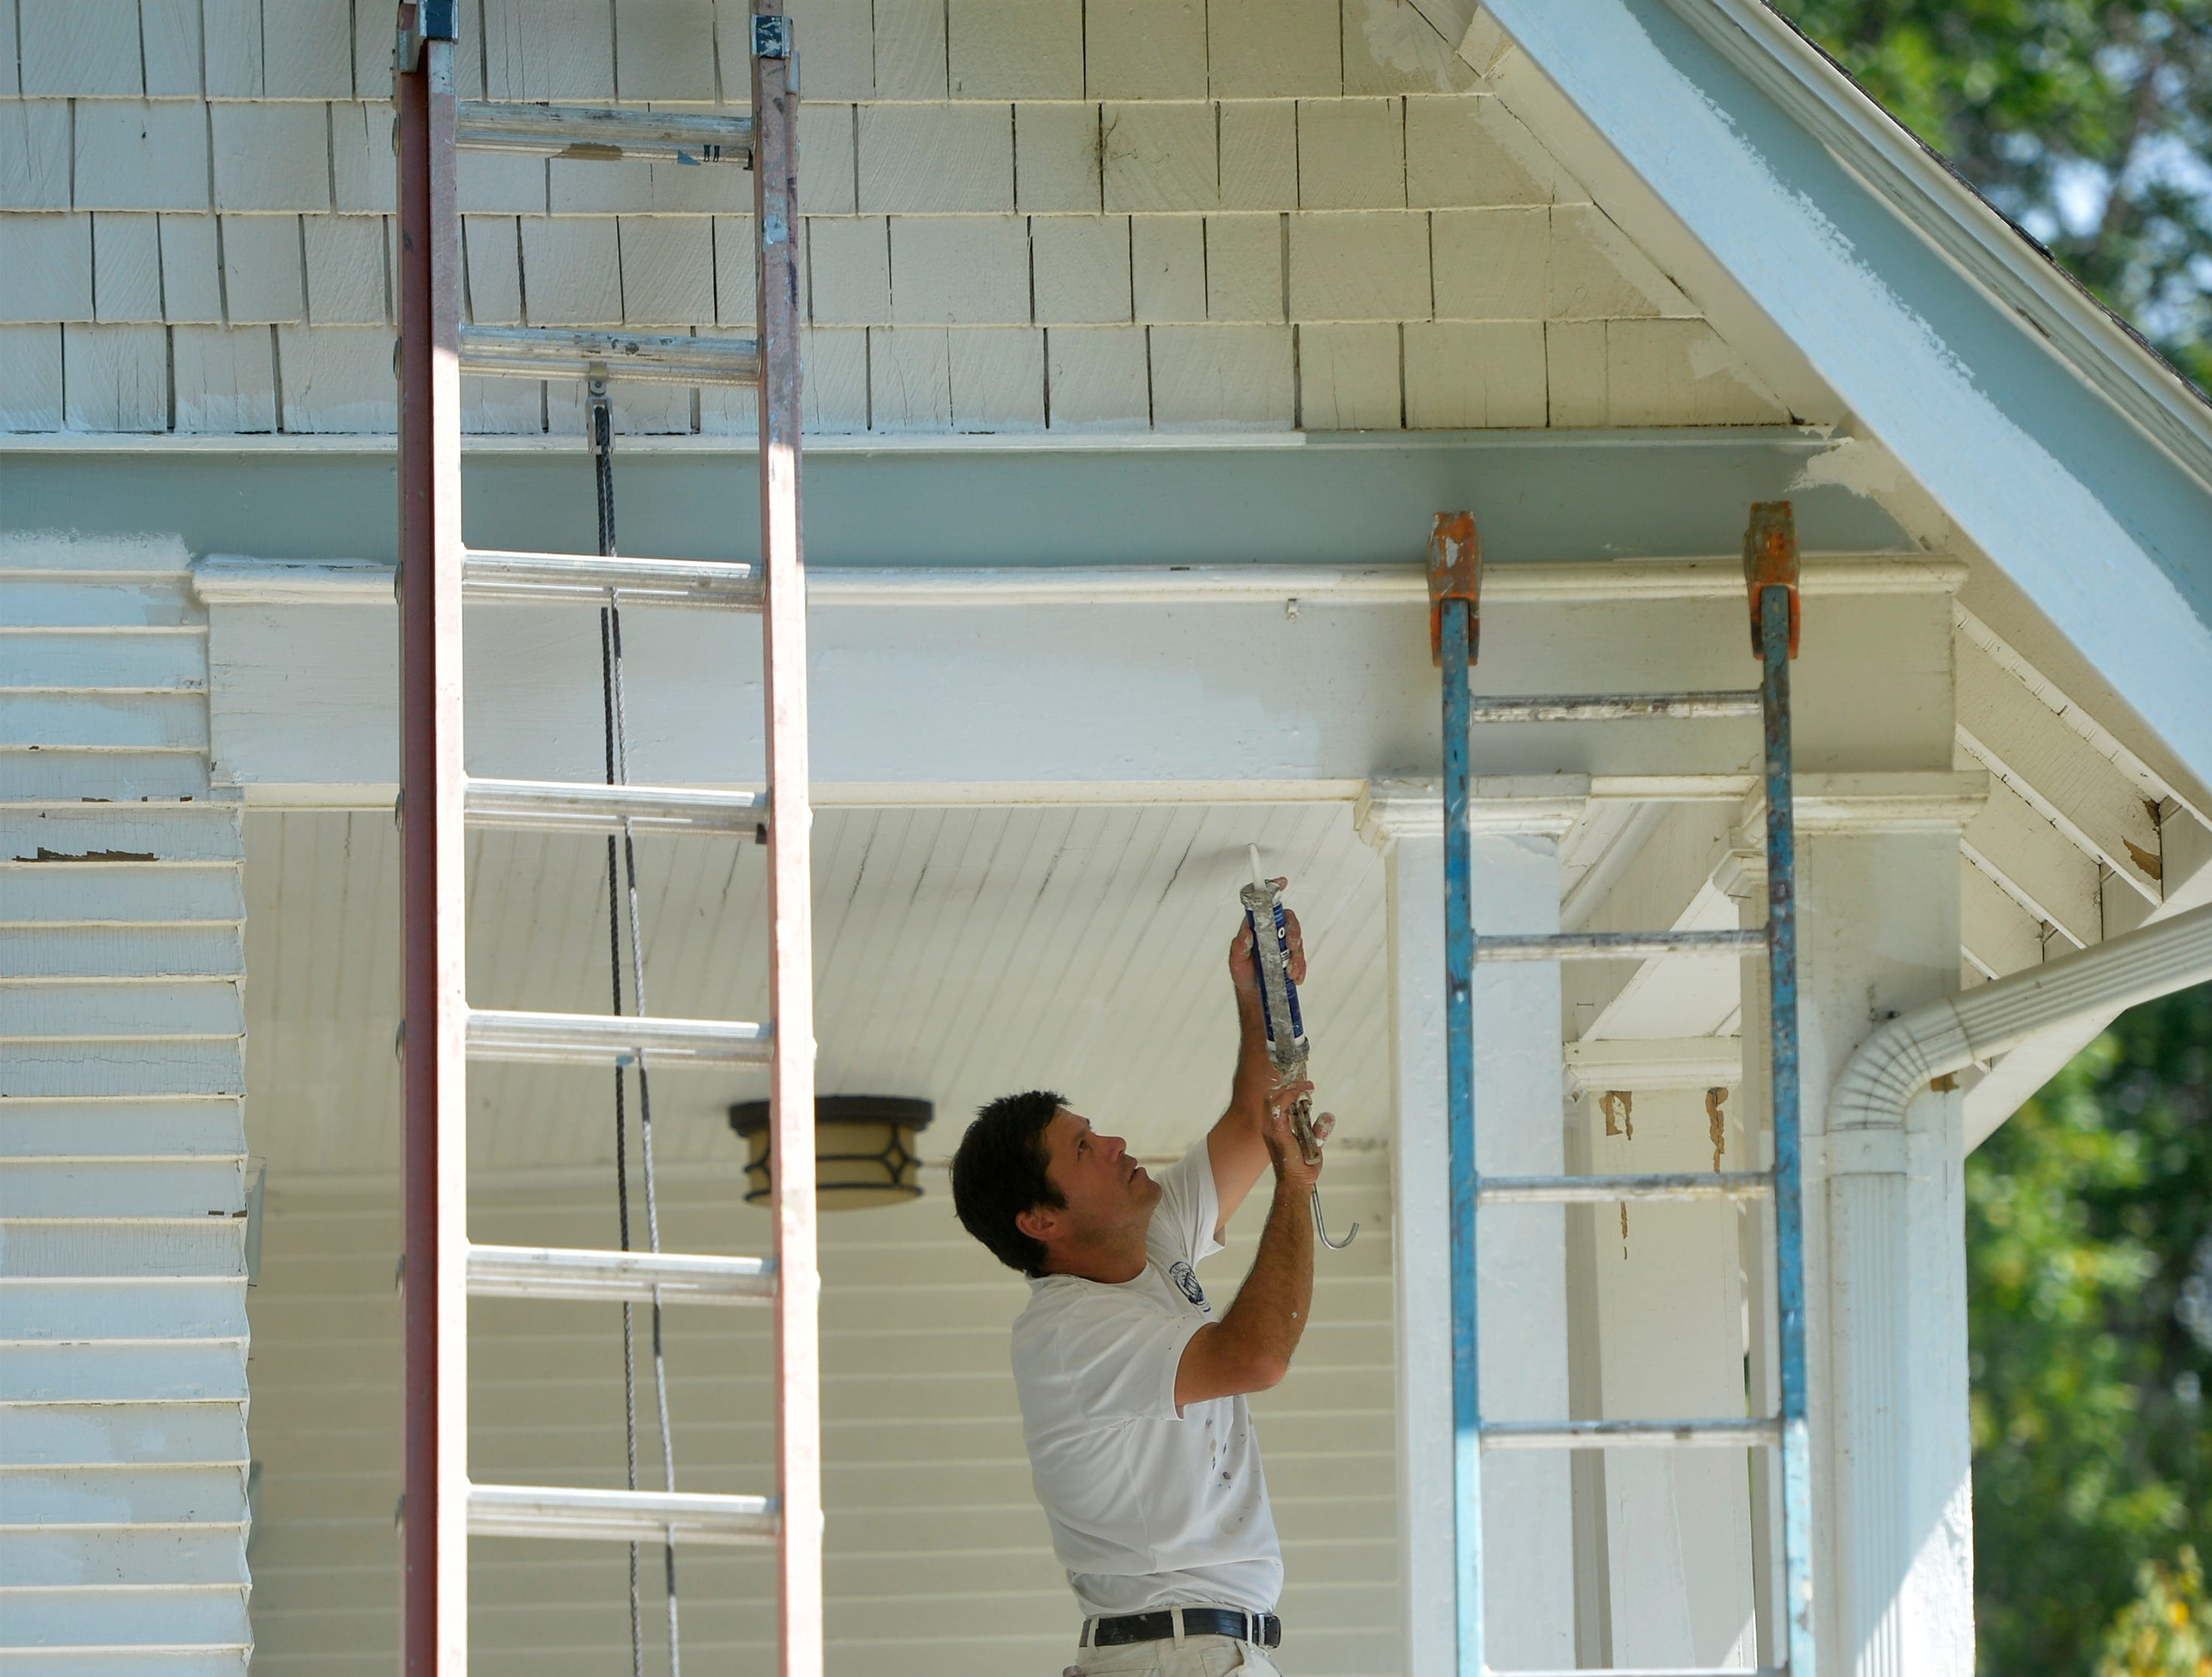 Warren Chamakoon of C's Painting preps a house for painting on Thursday afternoon as the temperature approaches 100 degrees.